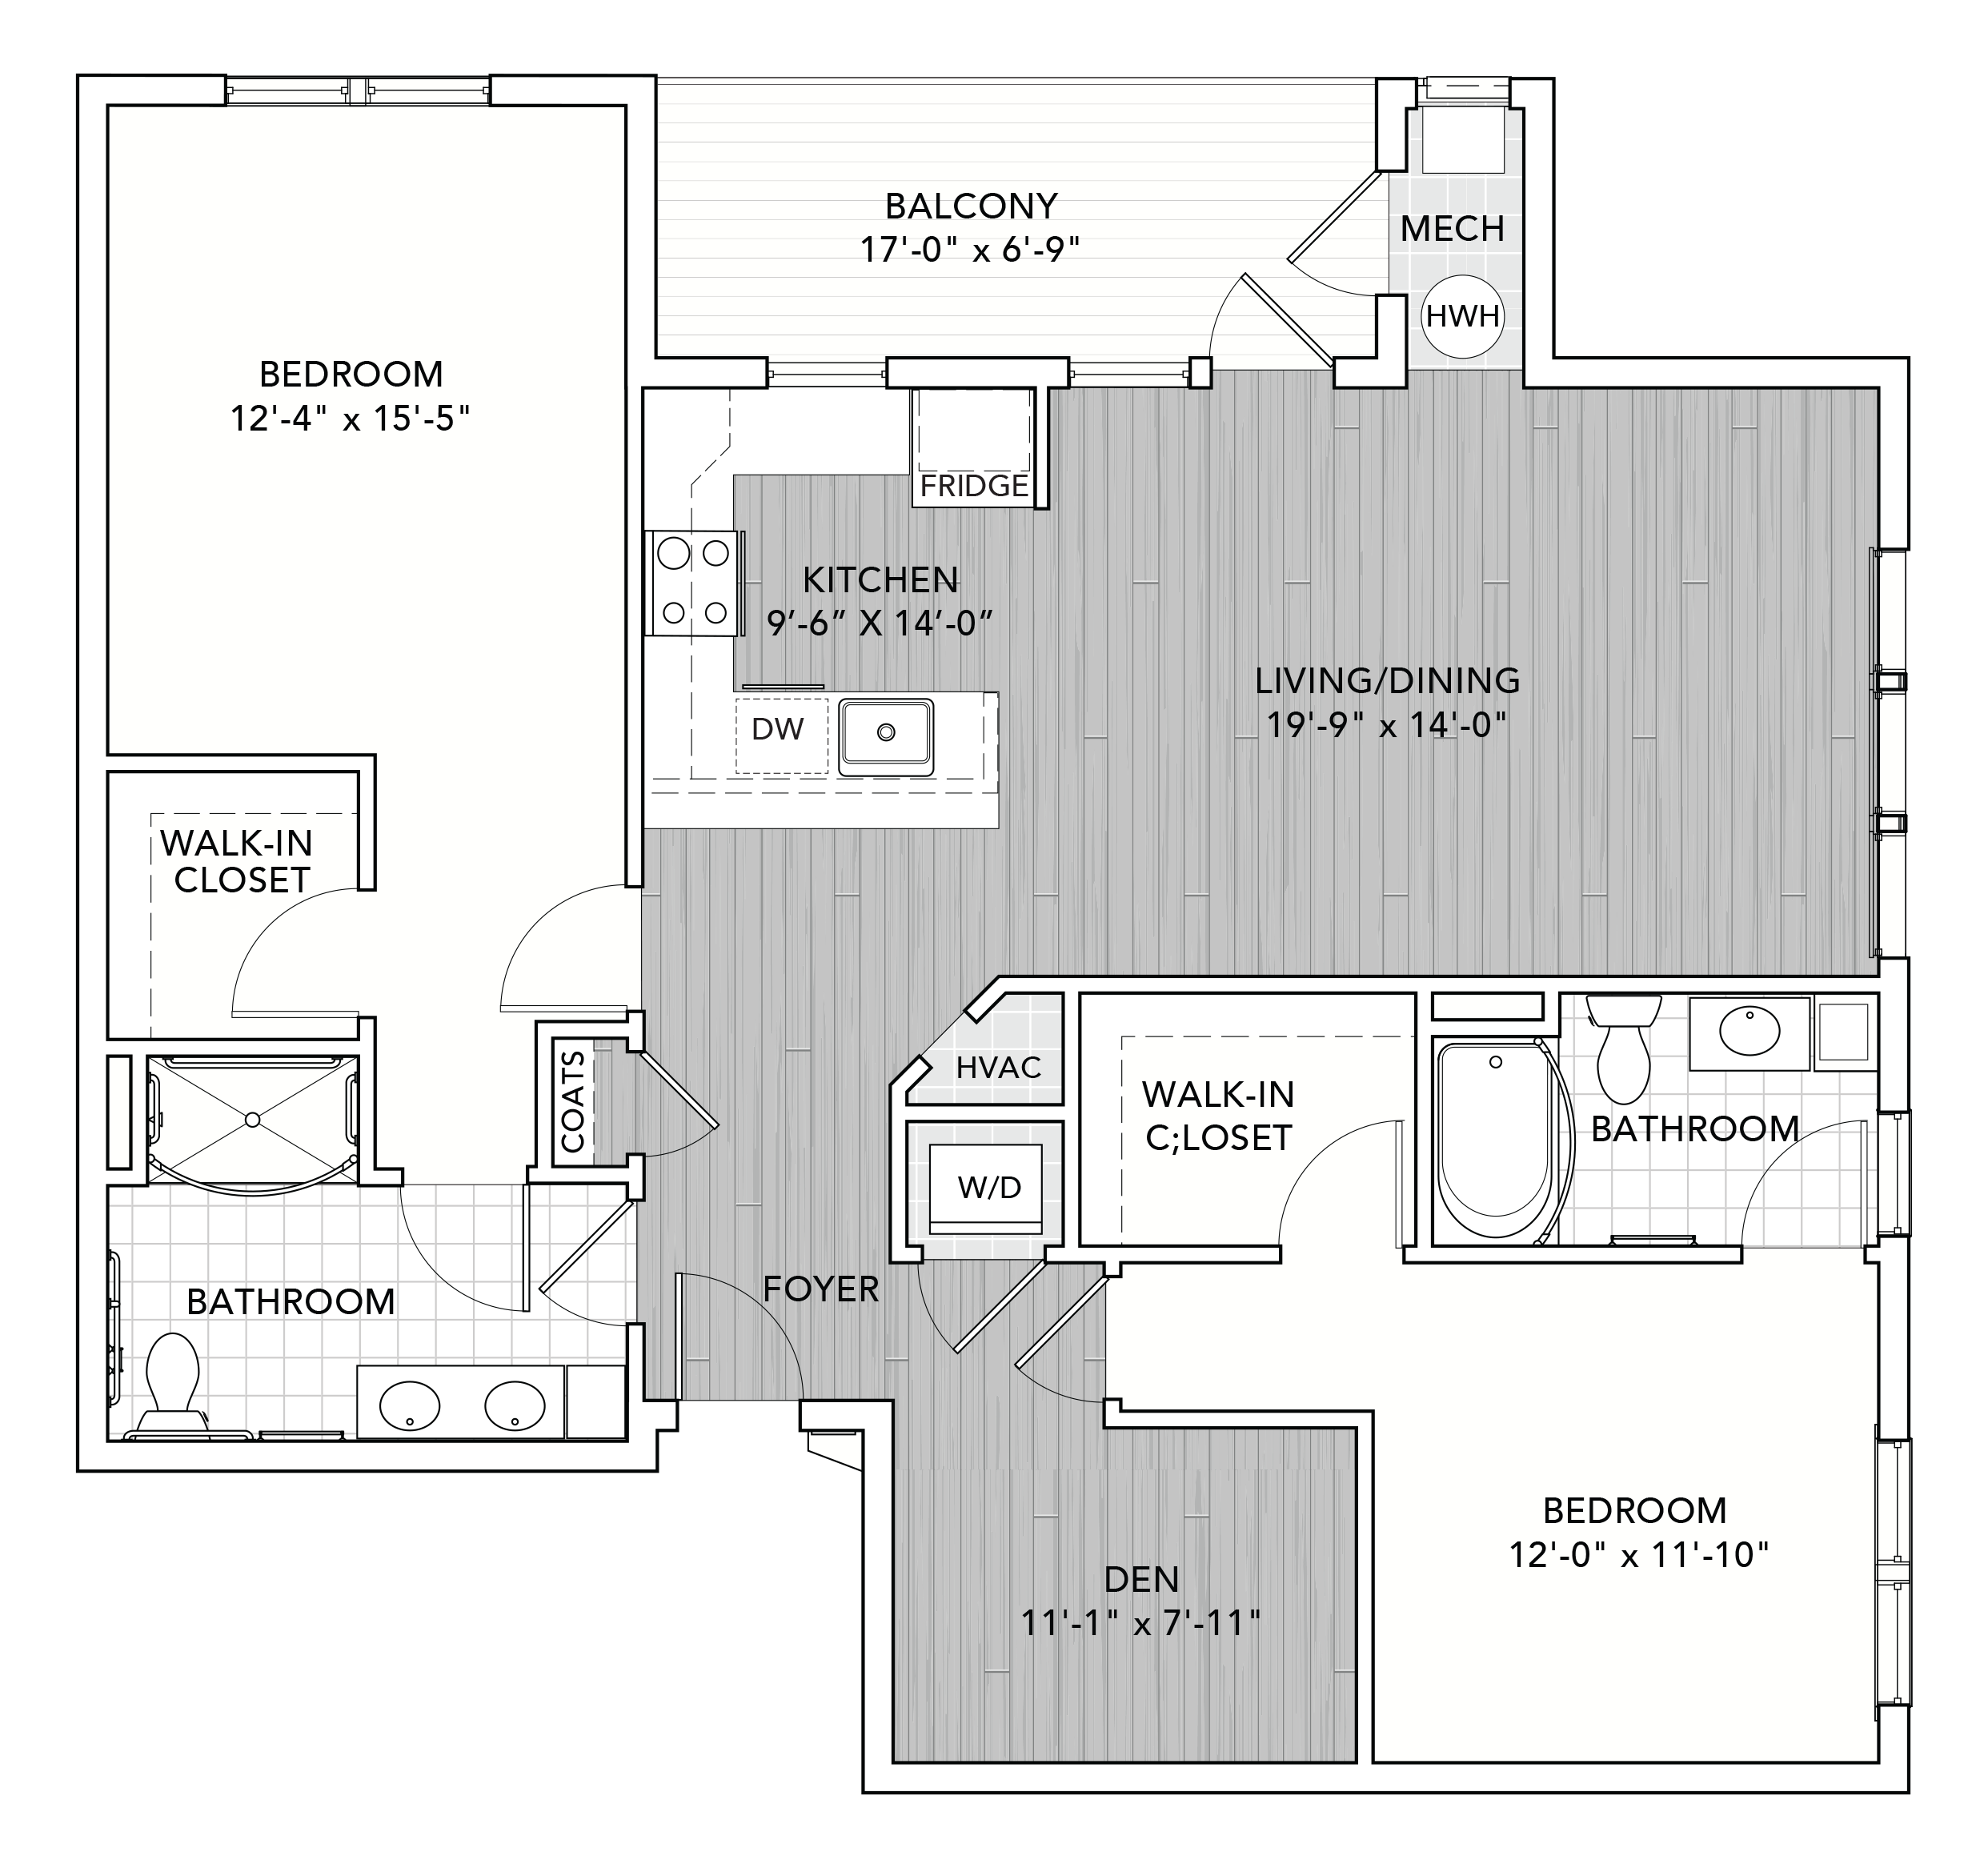 P0655013 parksquare b13 1436 2 floorplan